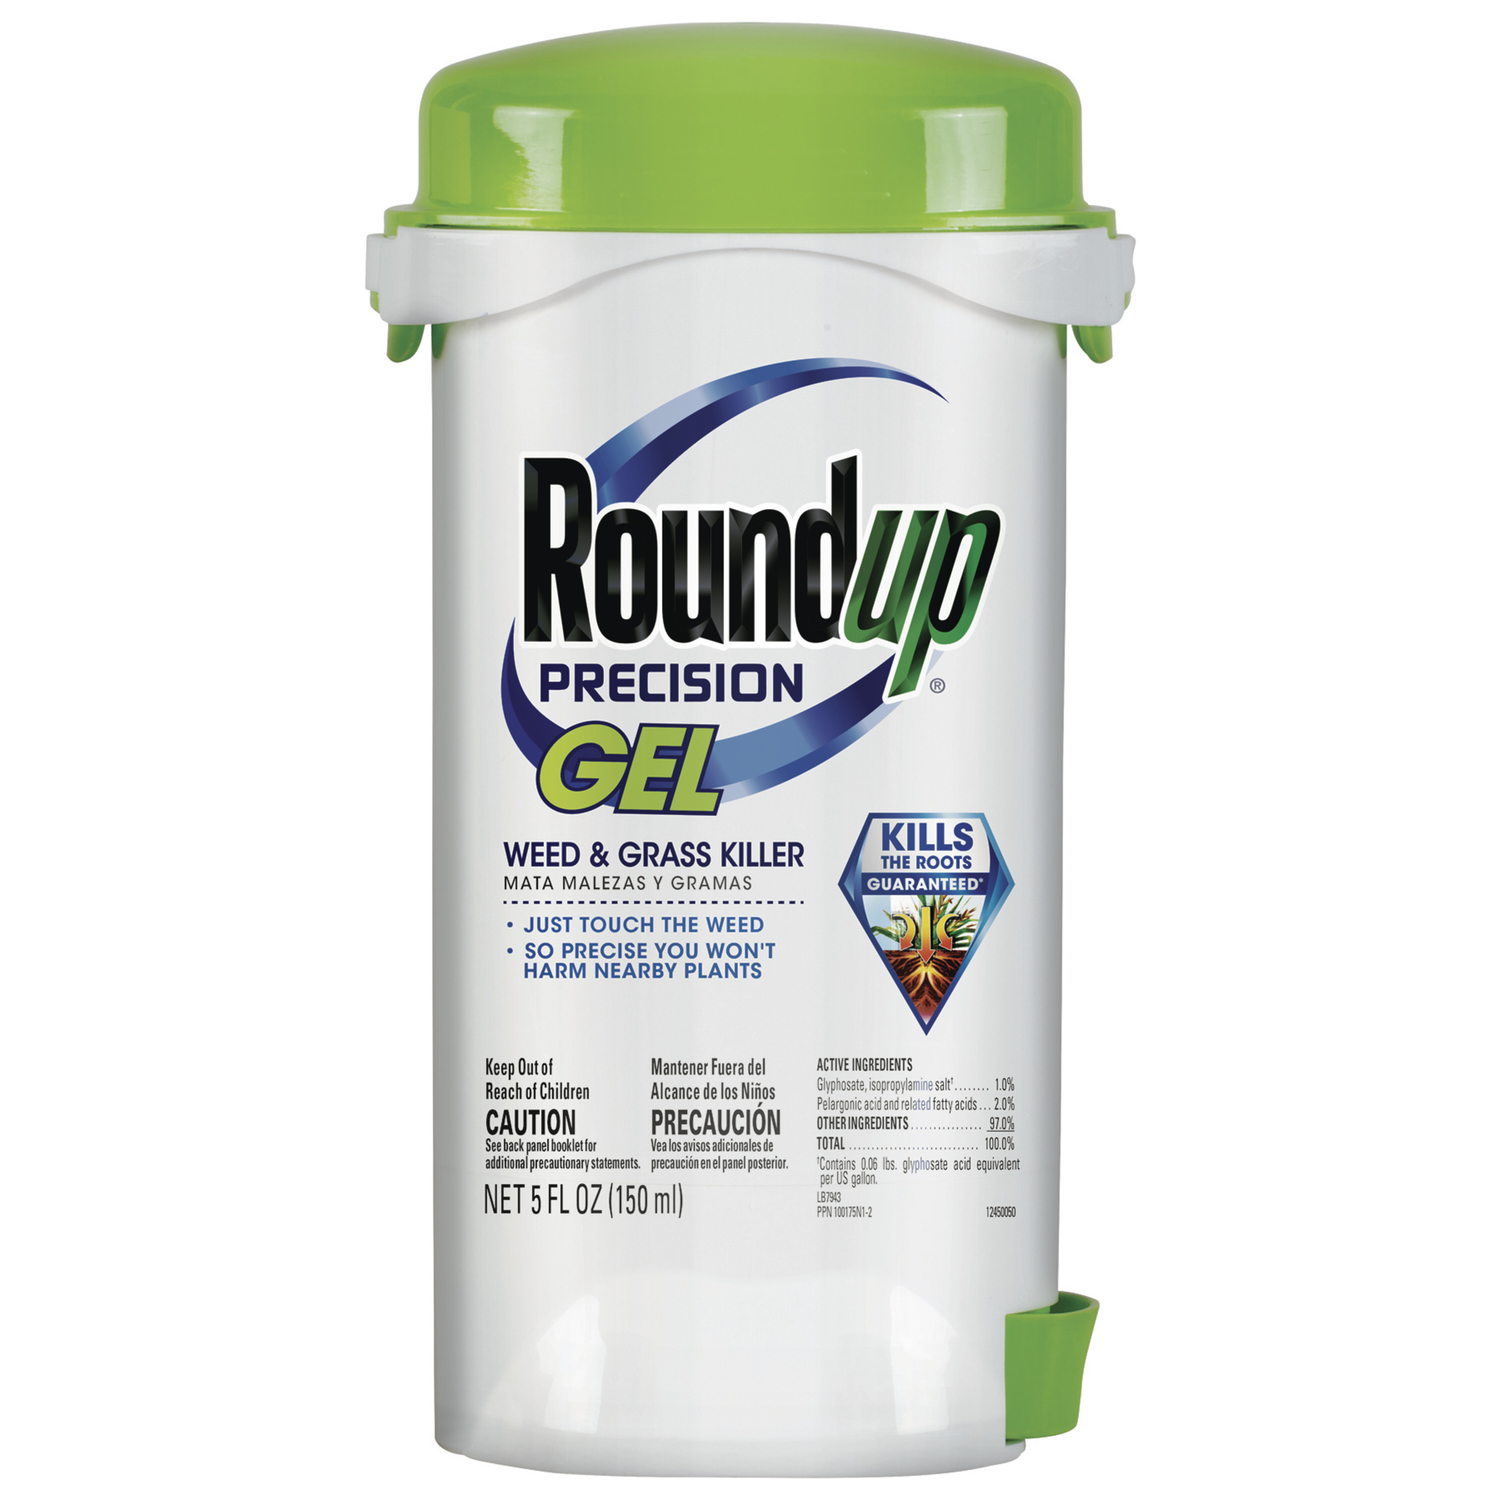 Roundup  Precision Gel  RTU Liquid  Weed and Grass Killer  5 oz.